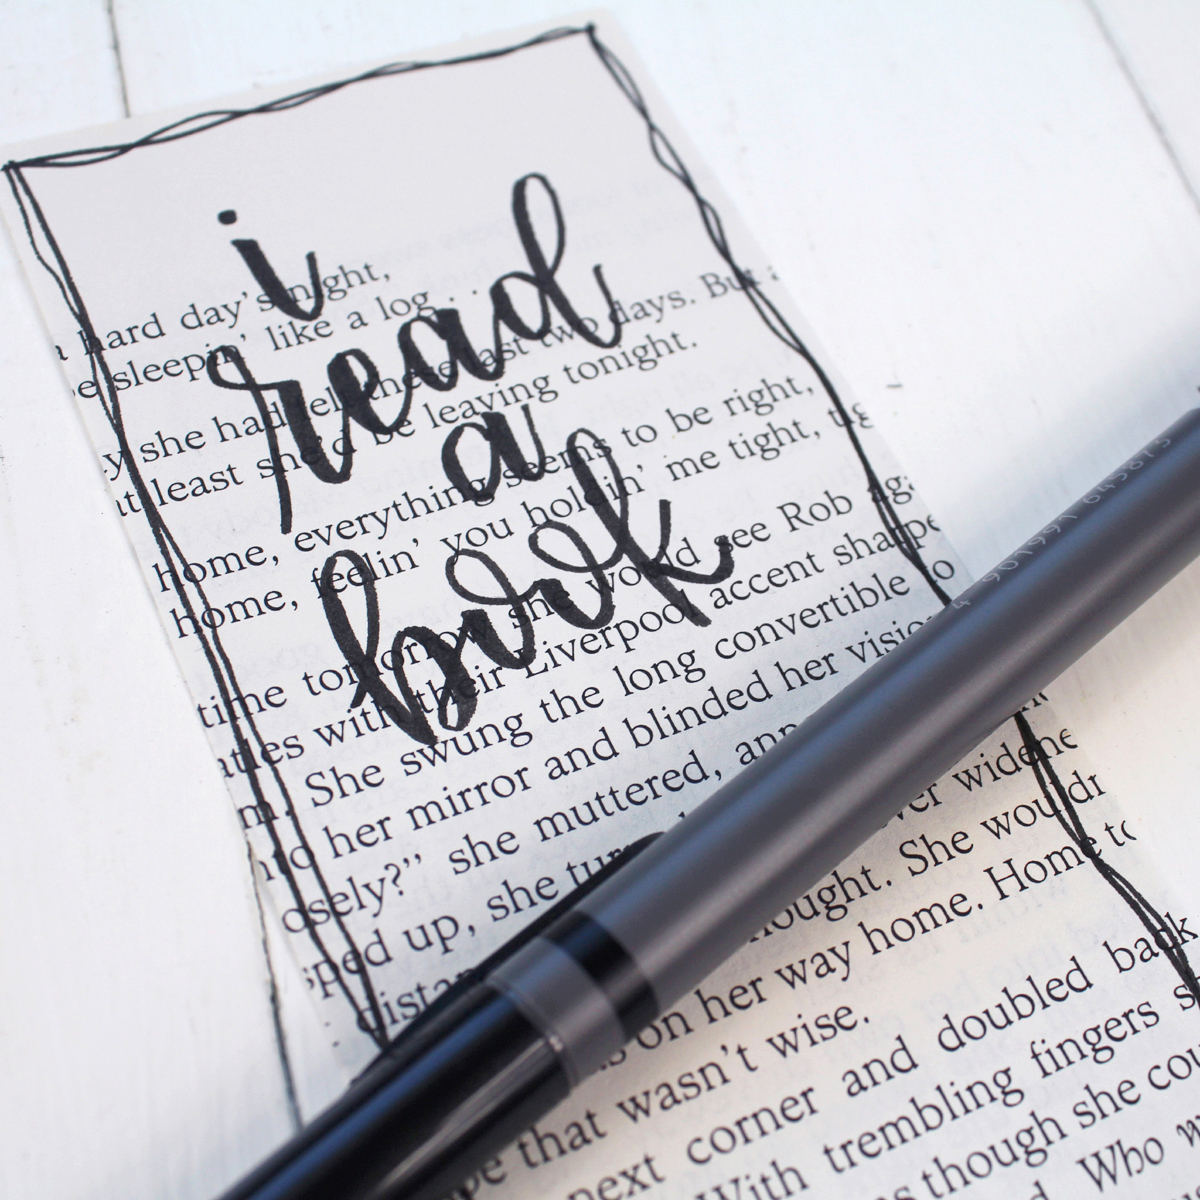 Then use the brush pen to letter your favorite quote.